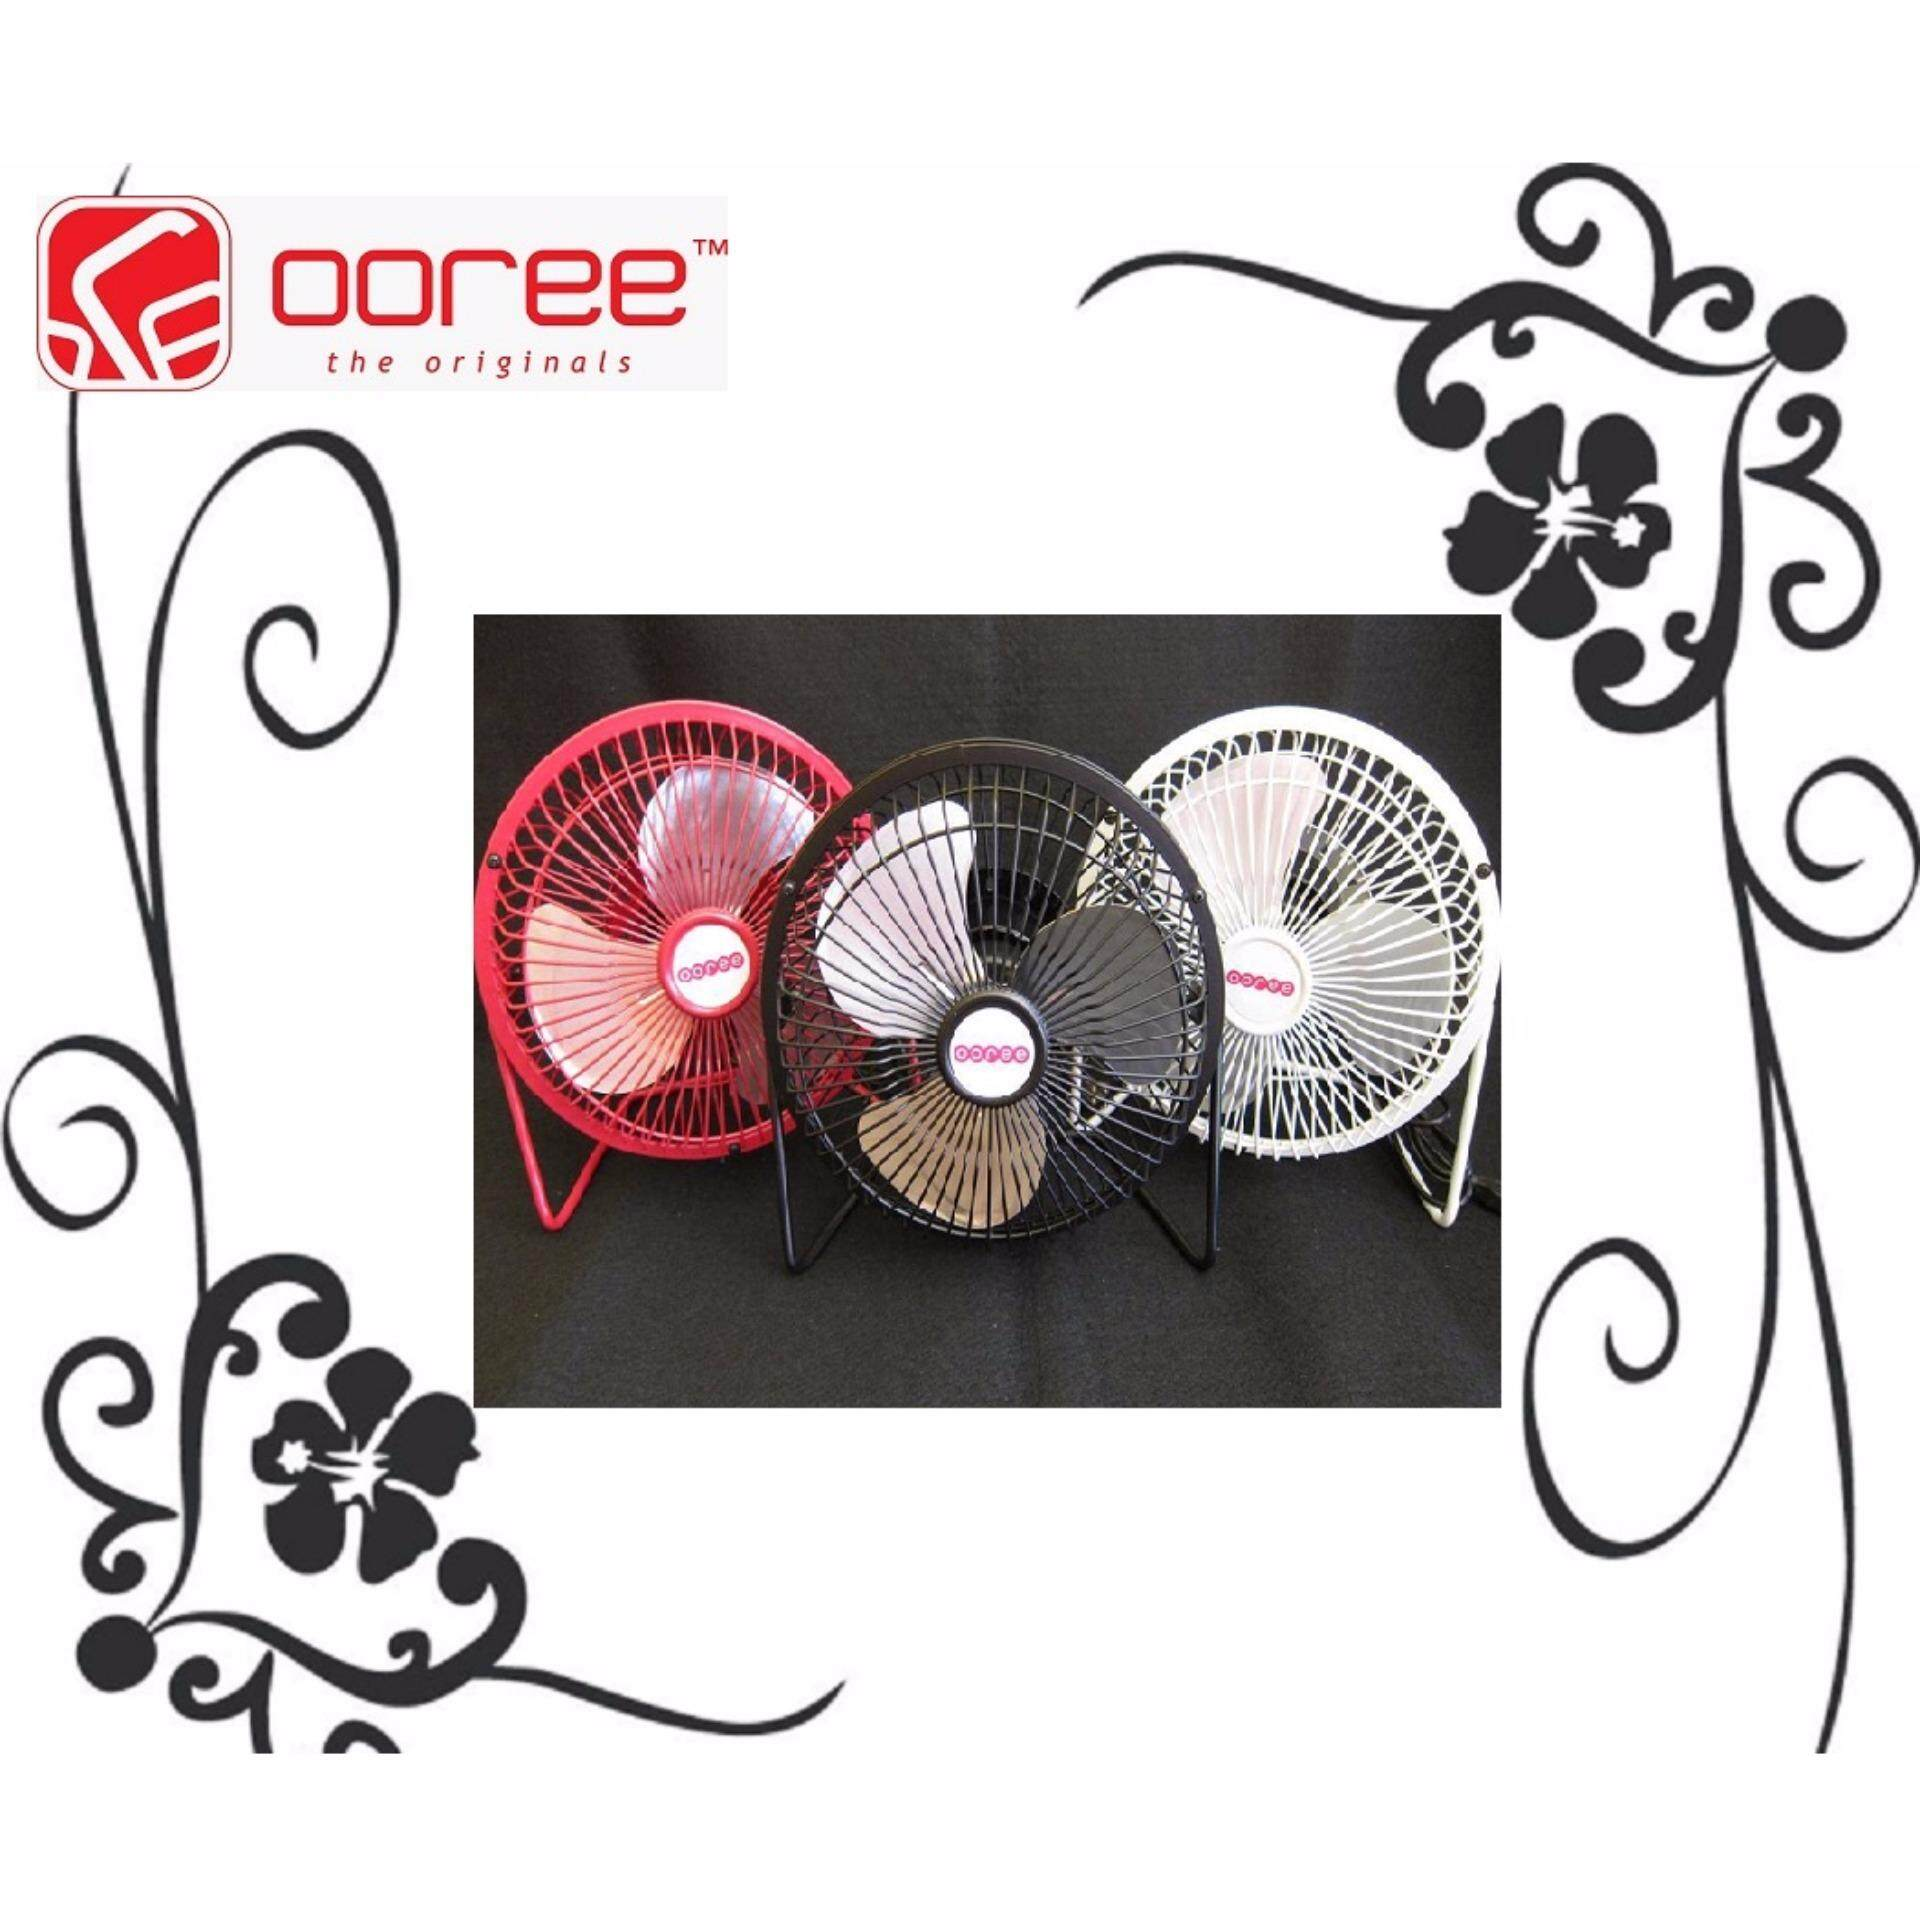 GENUINE PREMIUM QUALITY OOREE 8 USB FAN WITH ON/OFF BUTTON 18.5cm*11cm*19cm STRONG WIND Malaysia